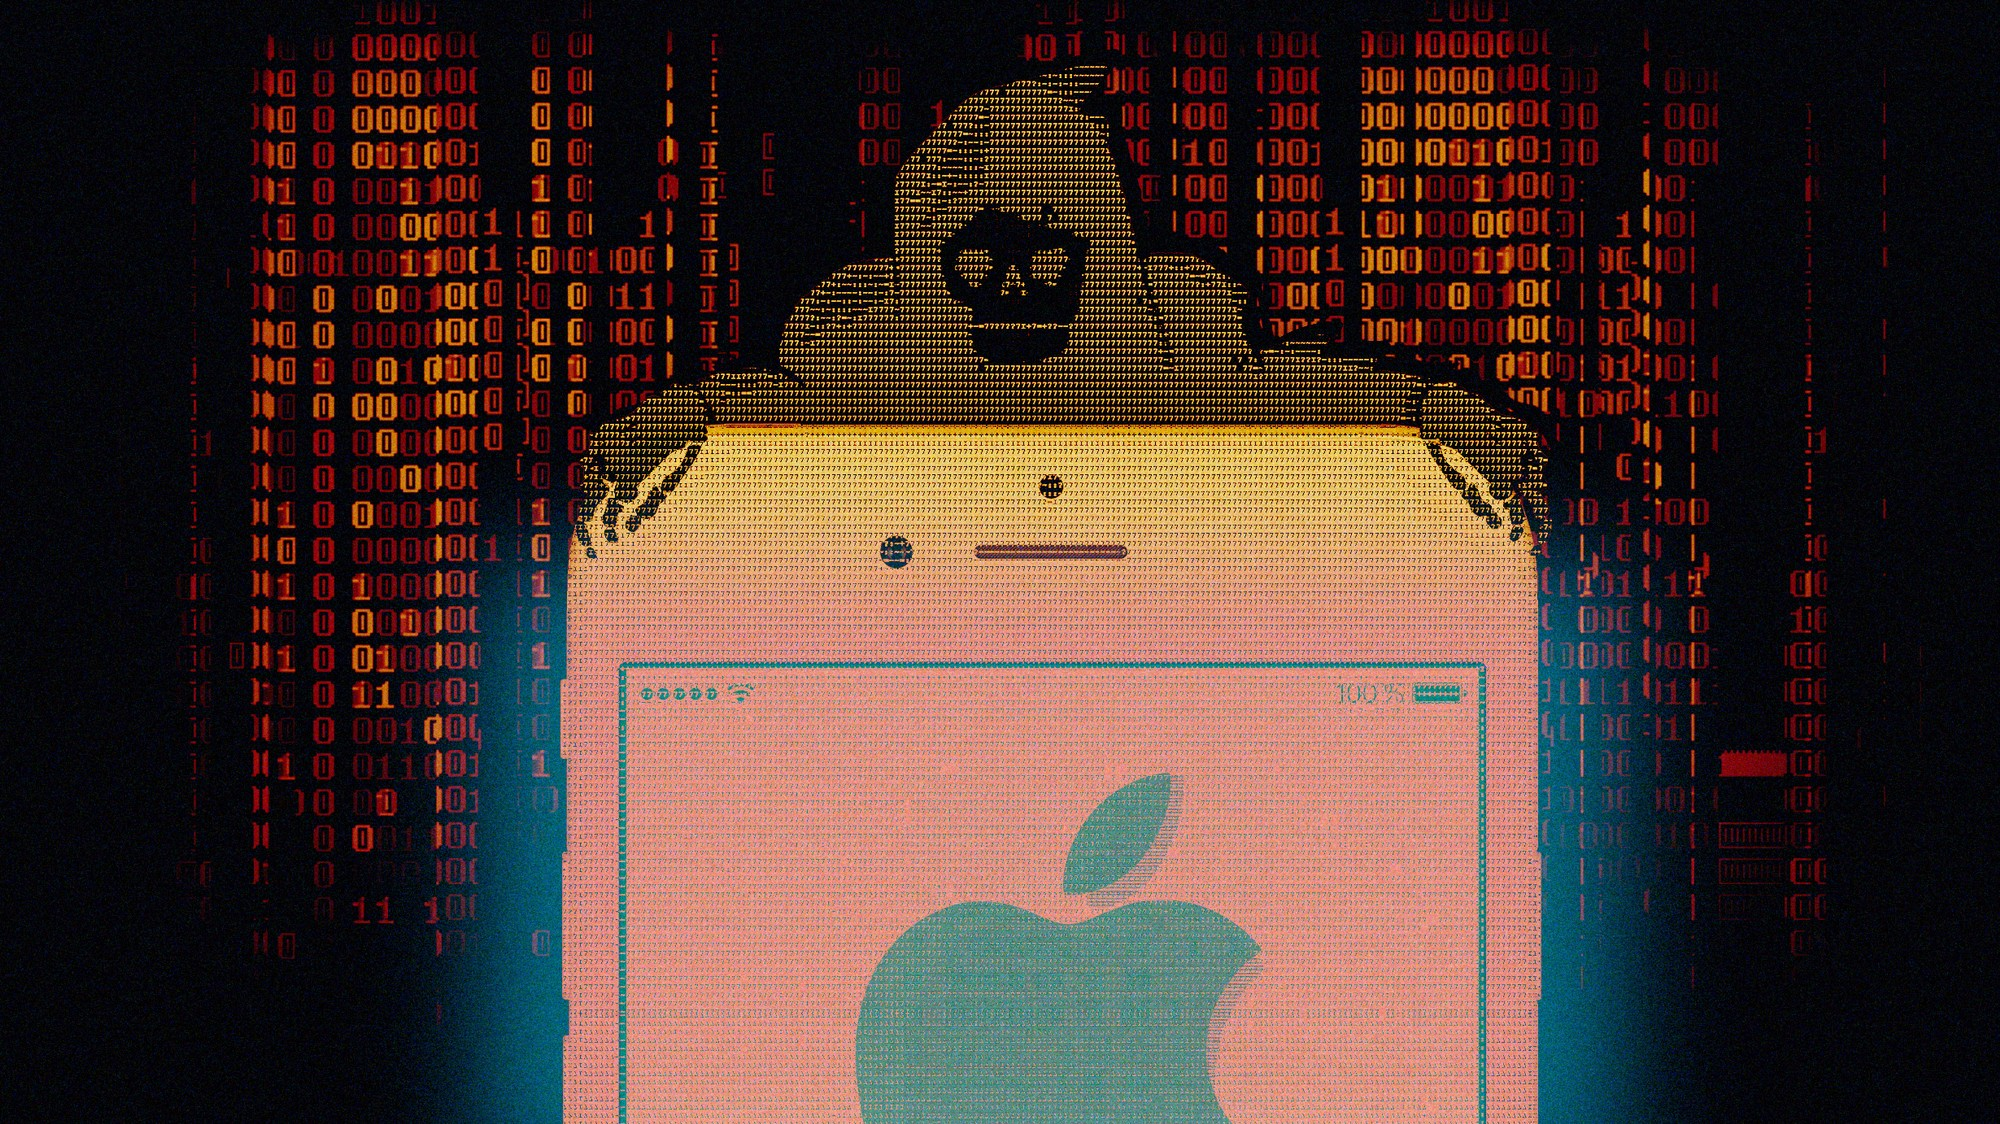 Malware Companies Are Finding New Ways to Spy on iPhones - VICE